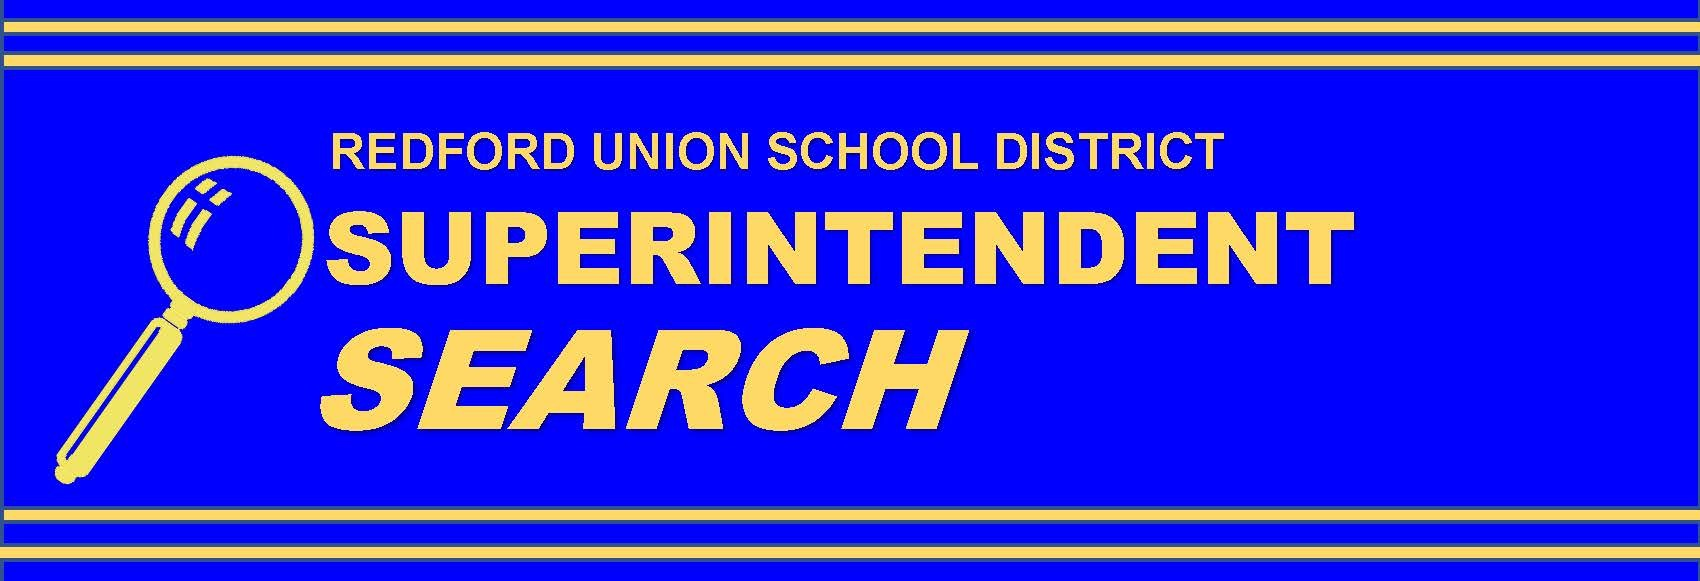 Redford Union School District - Superintendent Search